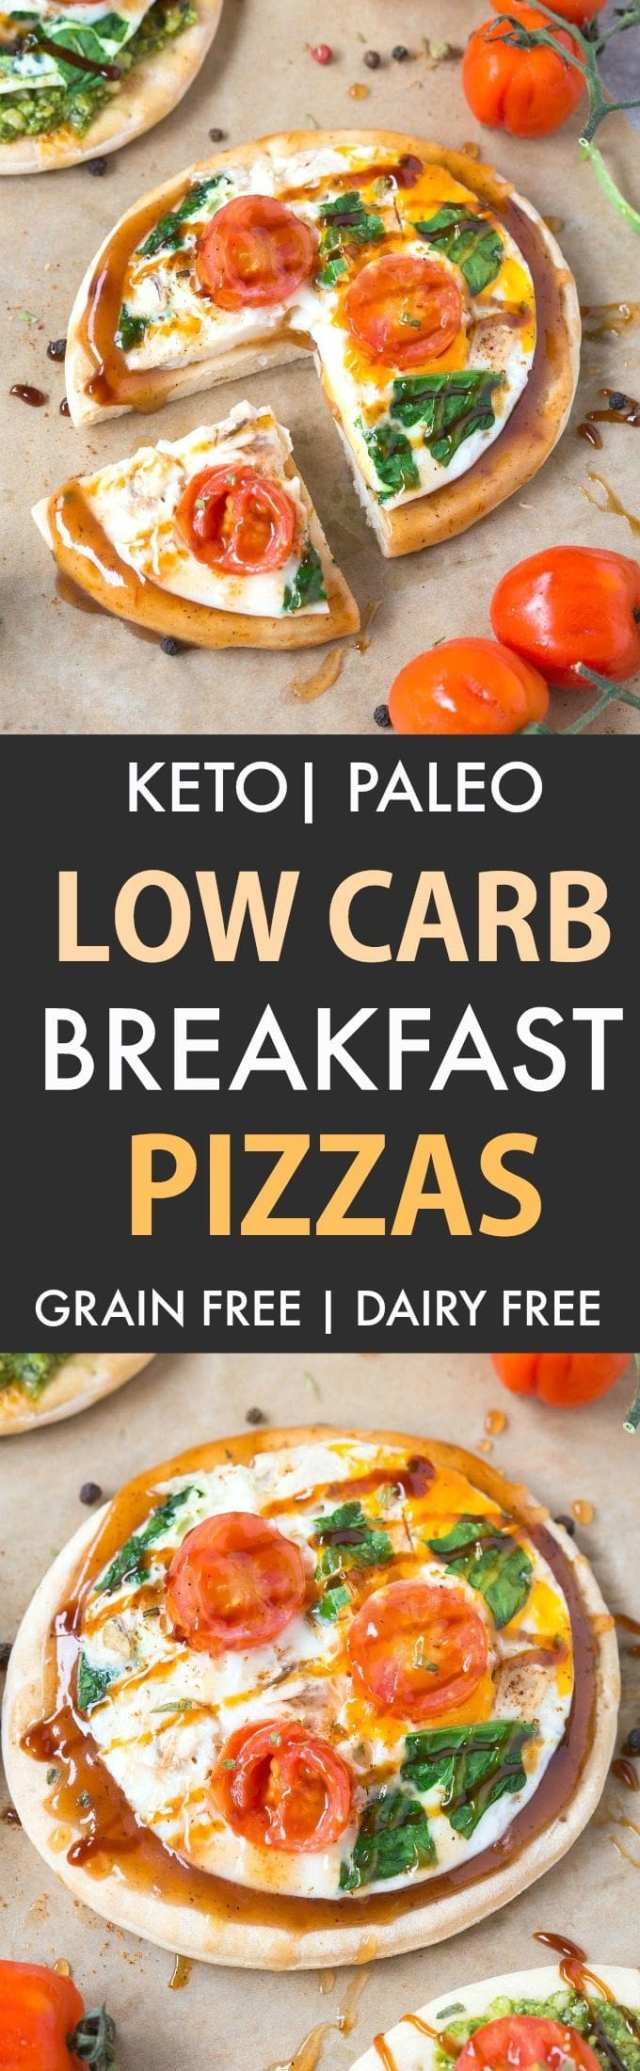 Keto Breakfast Pizzas (Low Carb, Paleo, Gluten Free, Grain Free)- Easy stovetop pizza crusts recipe packed with protein and perfect to load with your favorite toppings- Freezer friendly too! | #keto #ketopizza #paleopizza #grainfreepizza #lowcarbpizza | Recipe on thebigmansworld.com